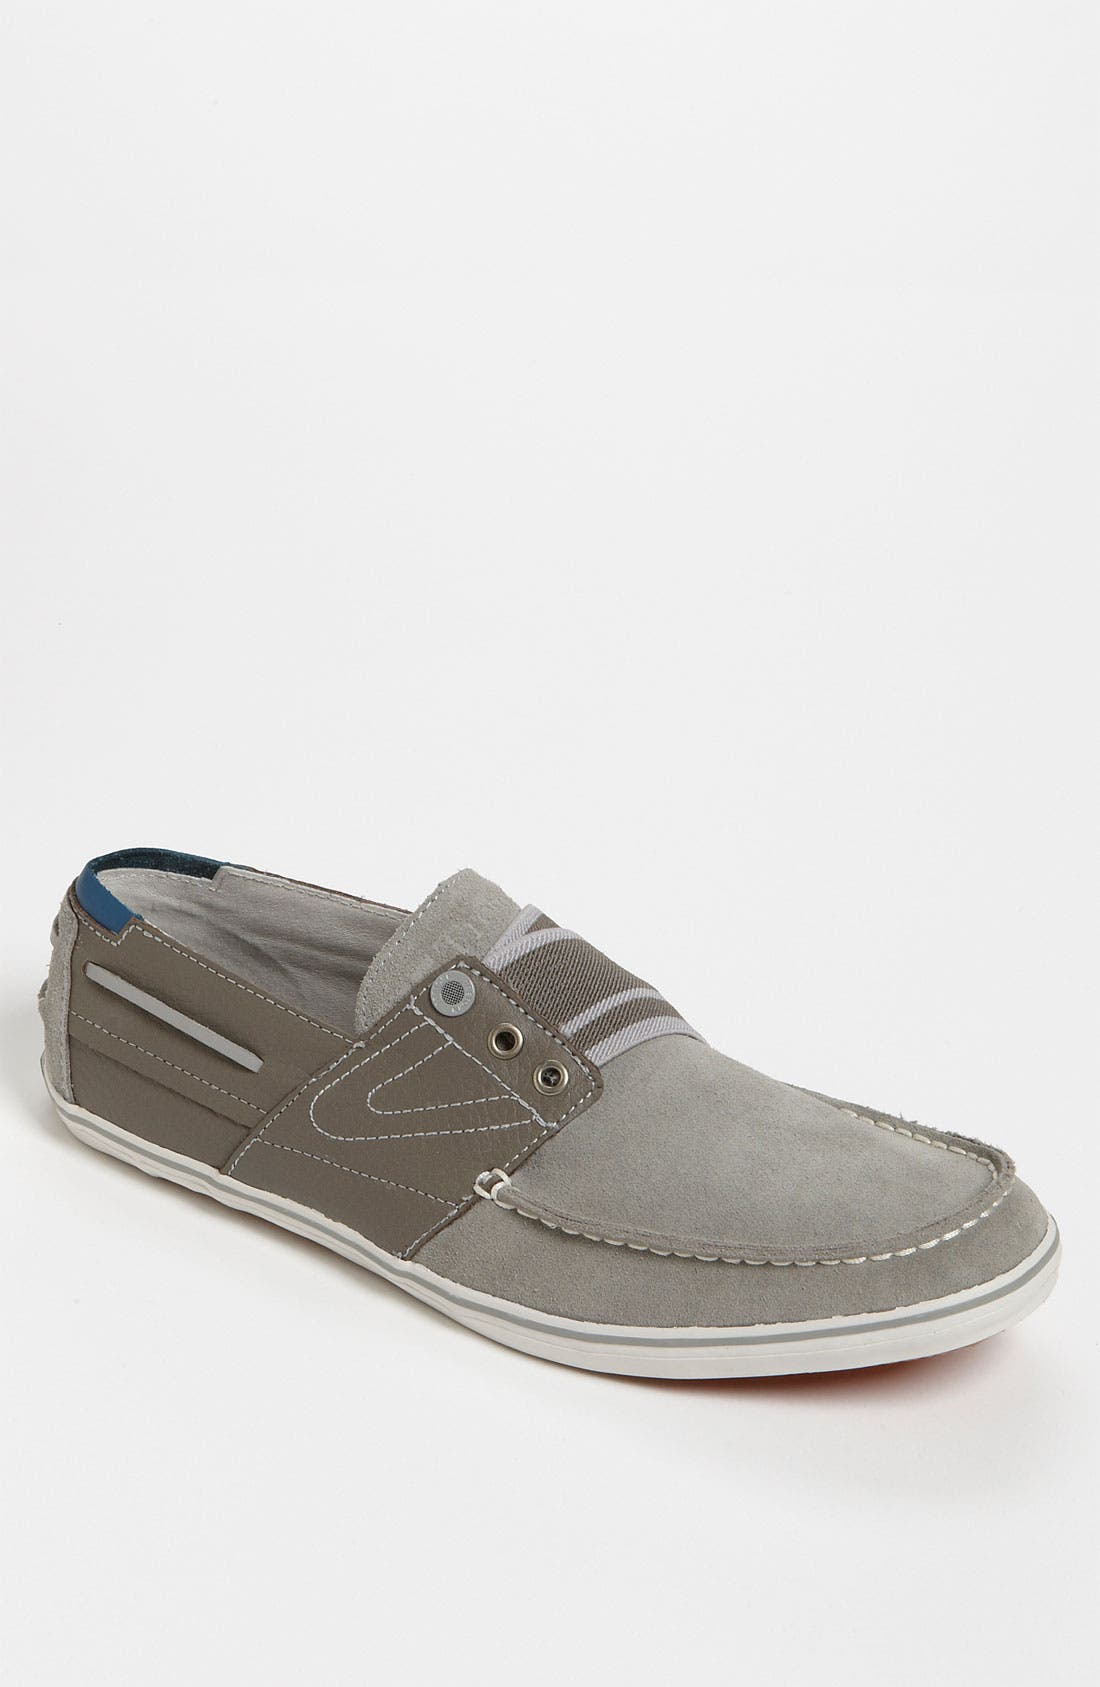 Main Image - Tretorn 'Smogensson' Suede & Leather Slip-On